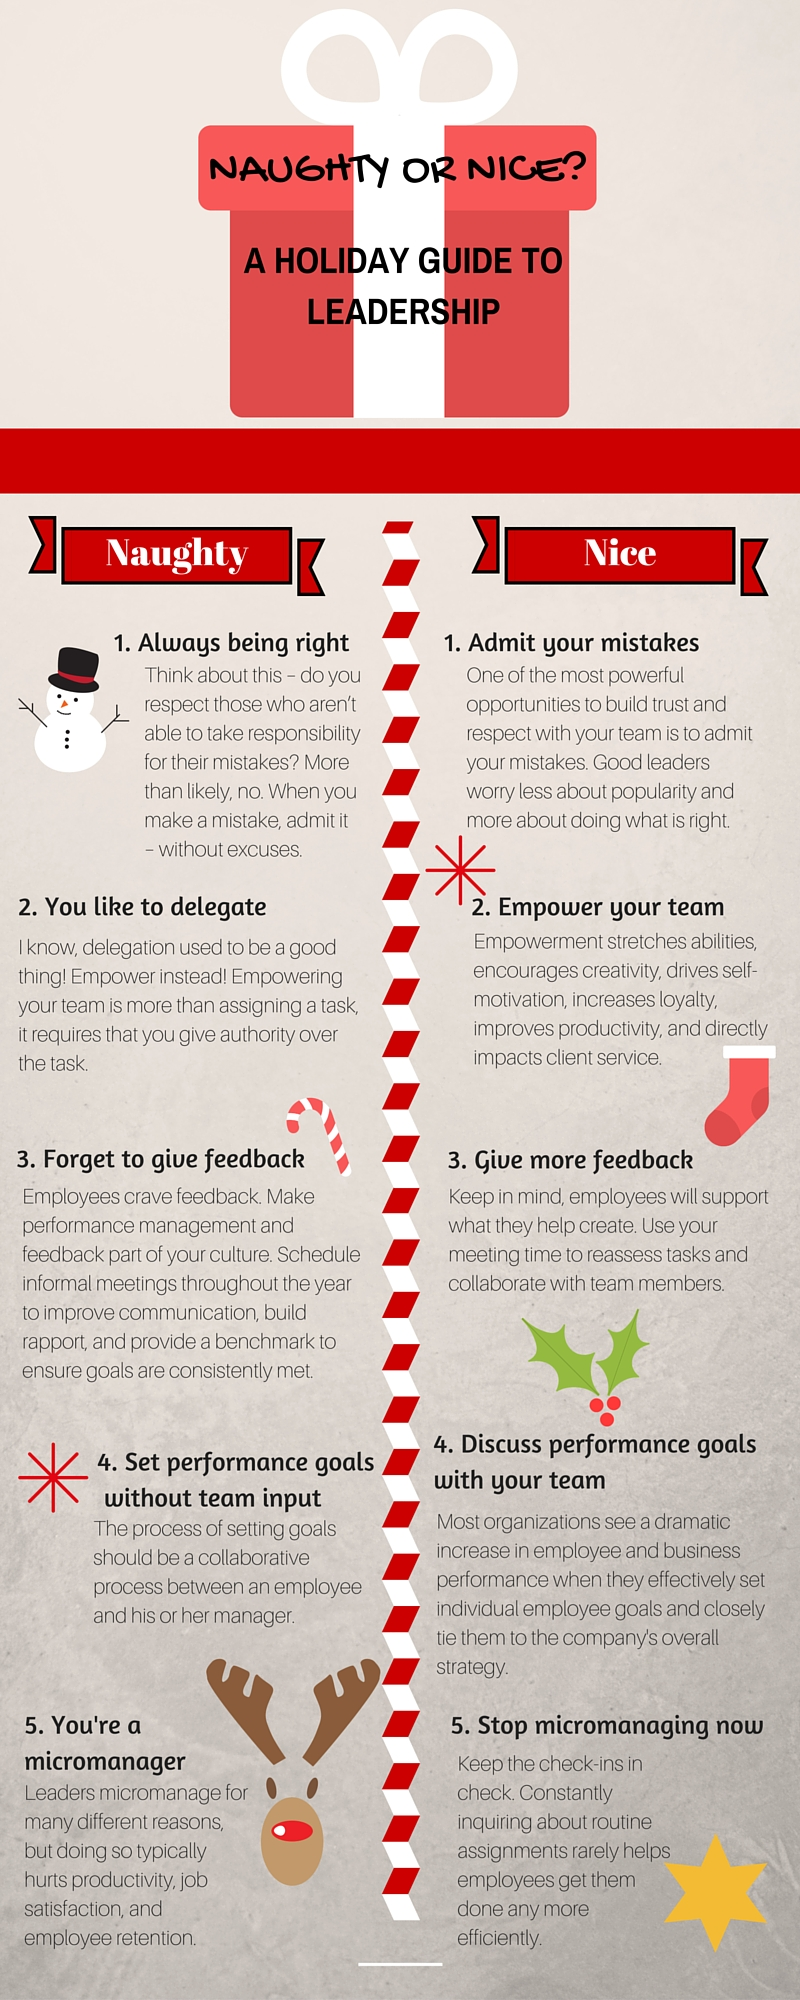 Naughty or Nice - A Holiday Guide To Leadership